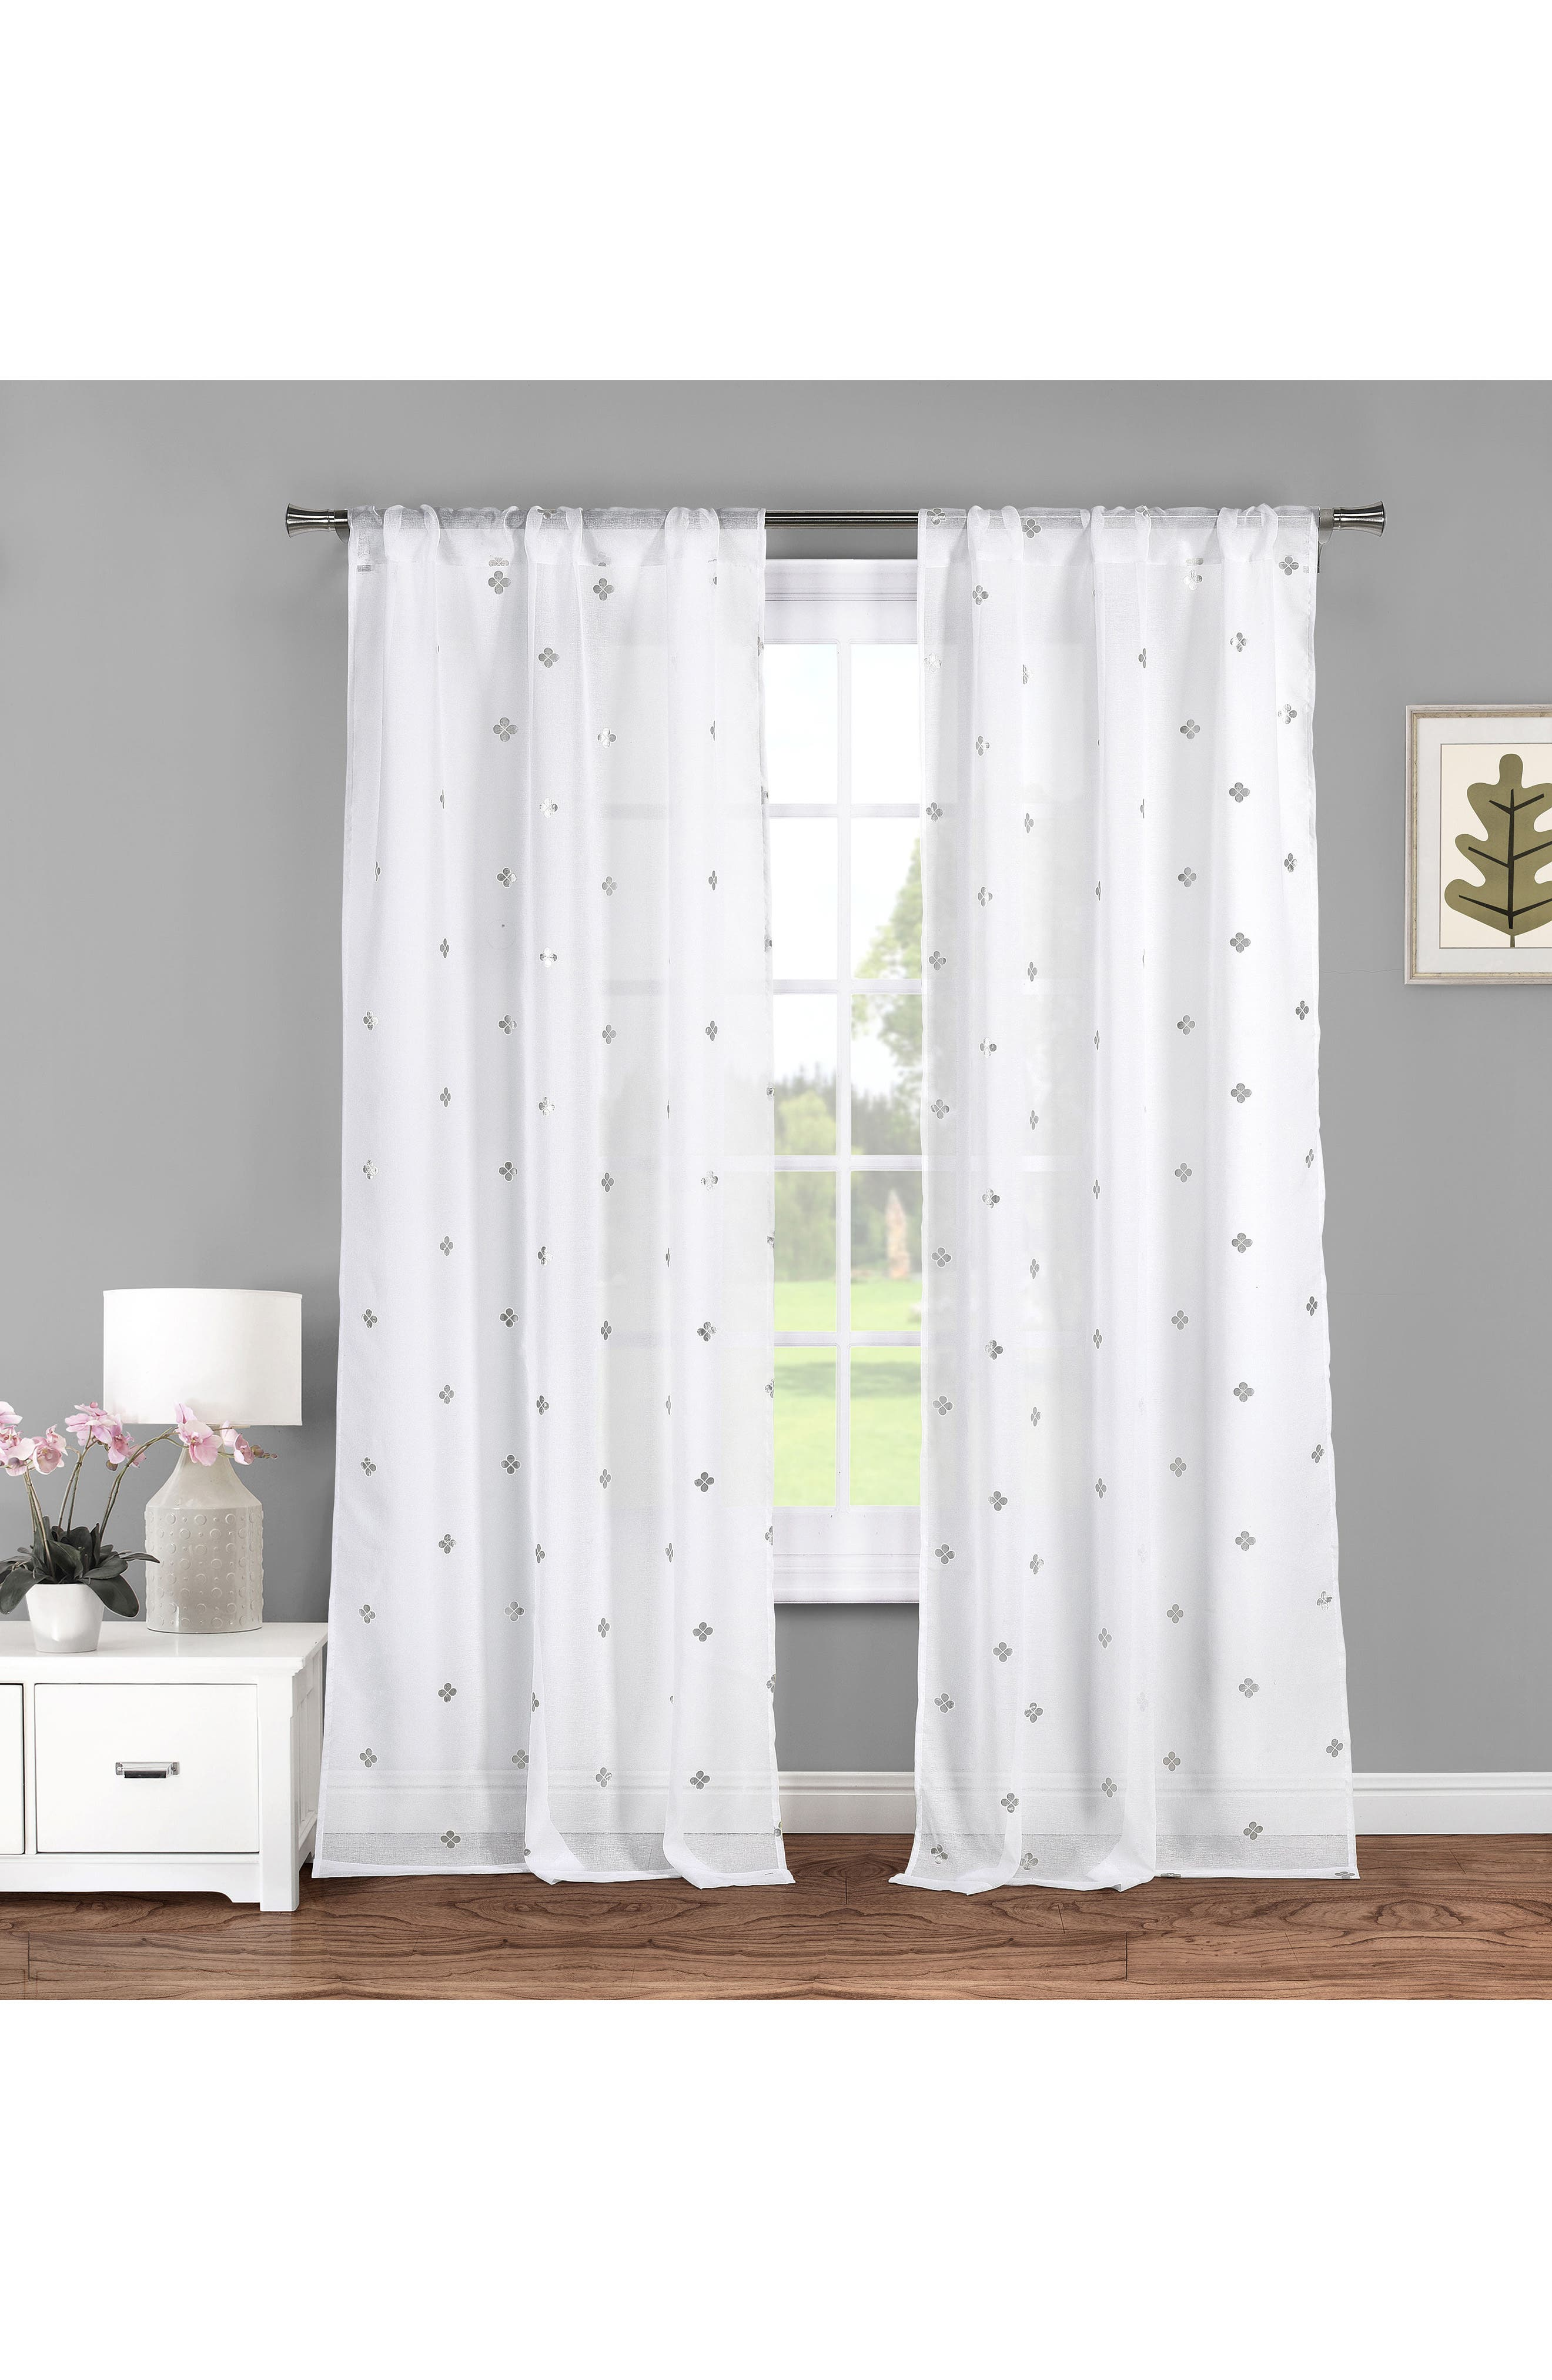 Becca Metallic Clover Sheer Window Panels,                             Main thumbnail 1, color,                             White/ Silver